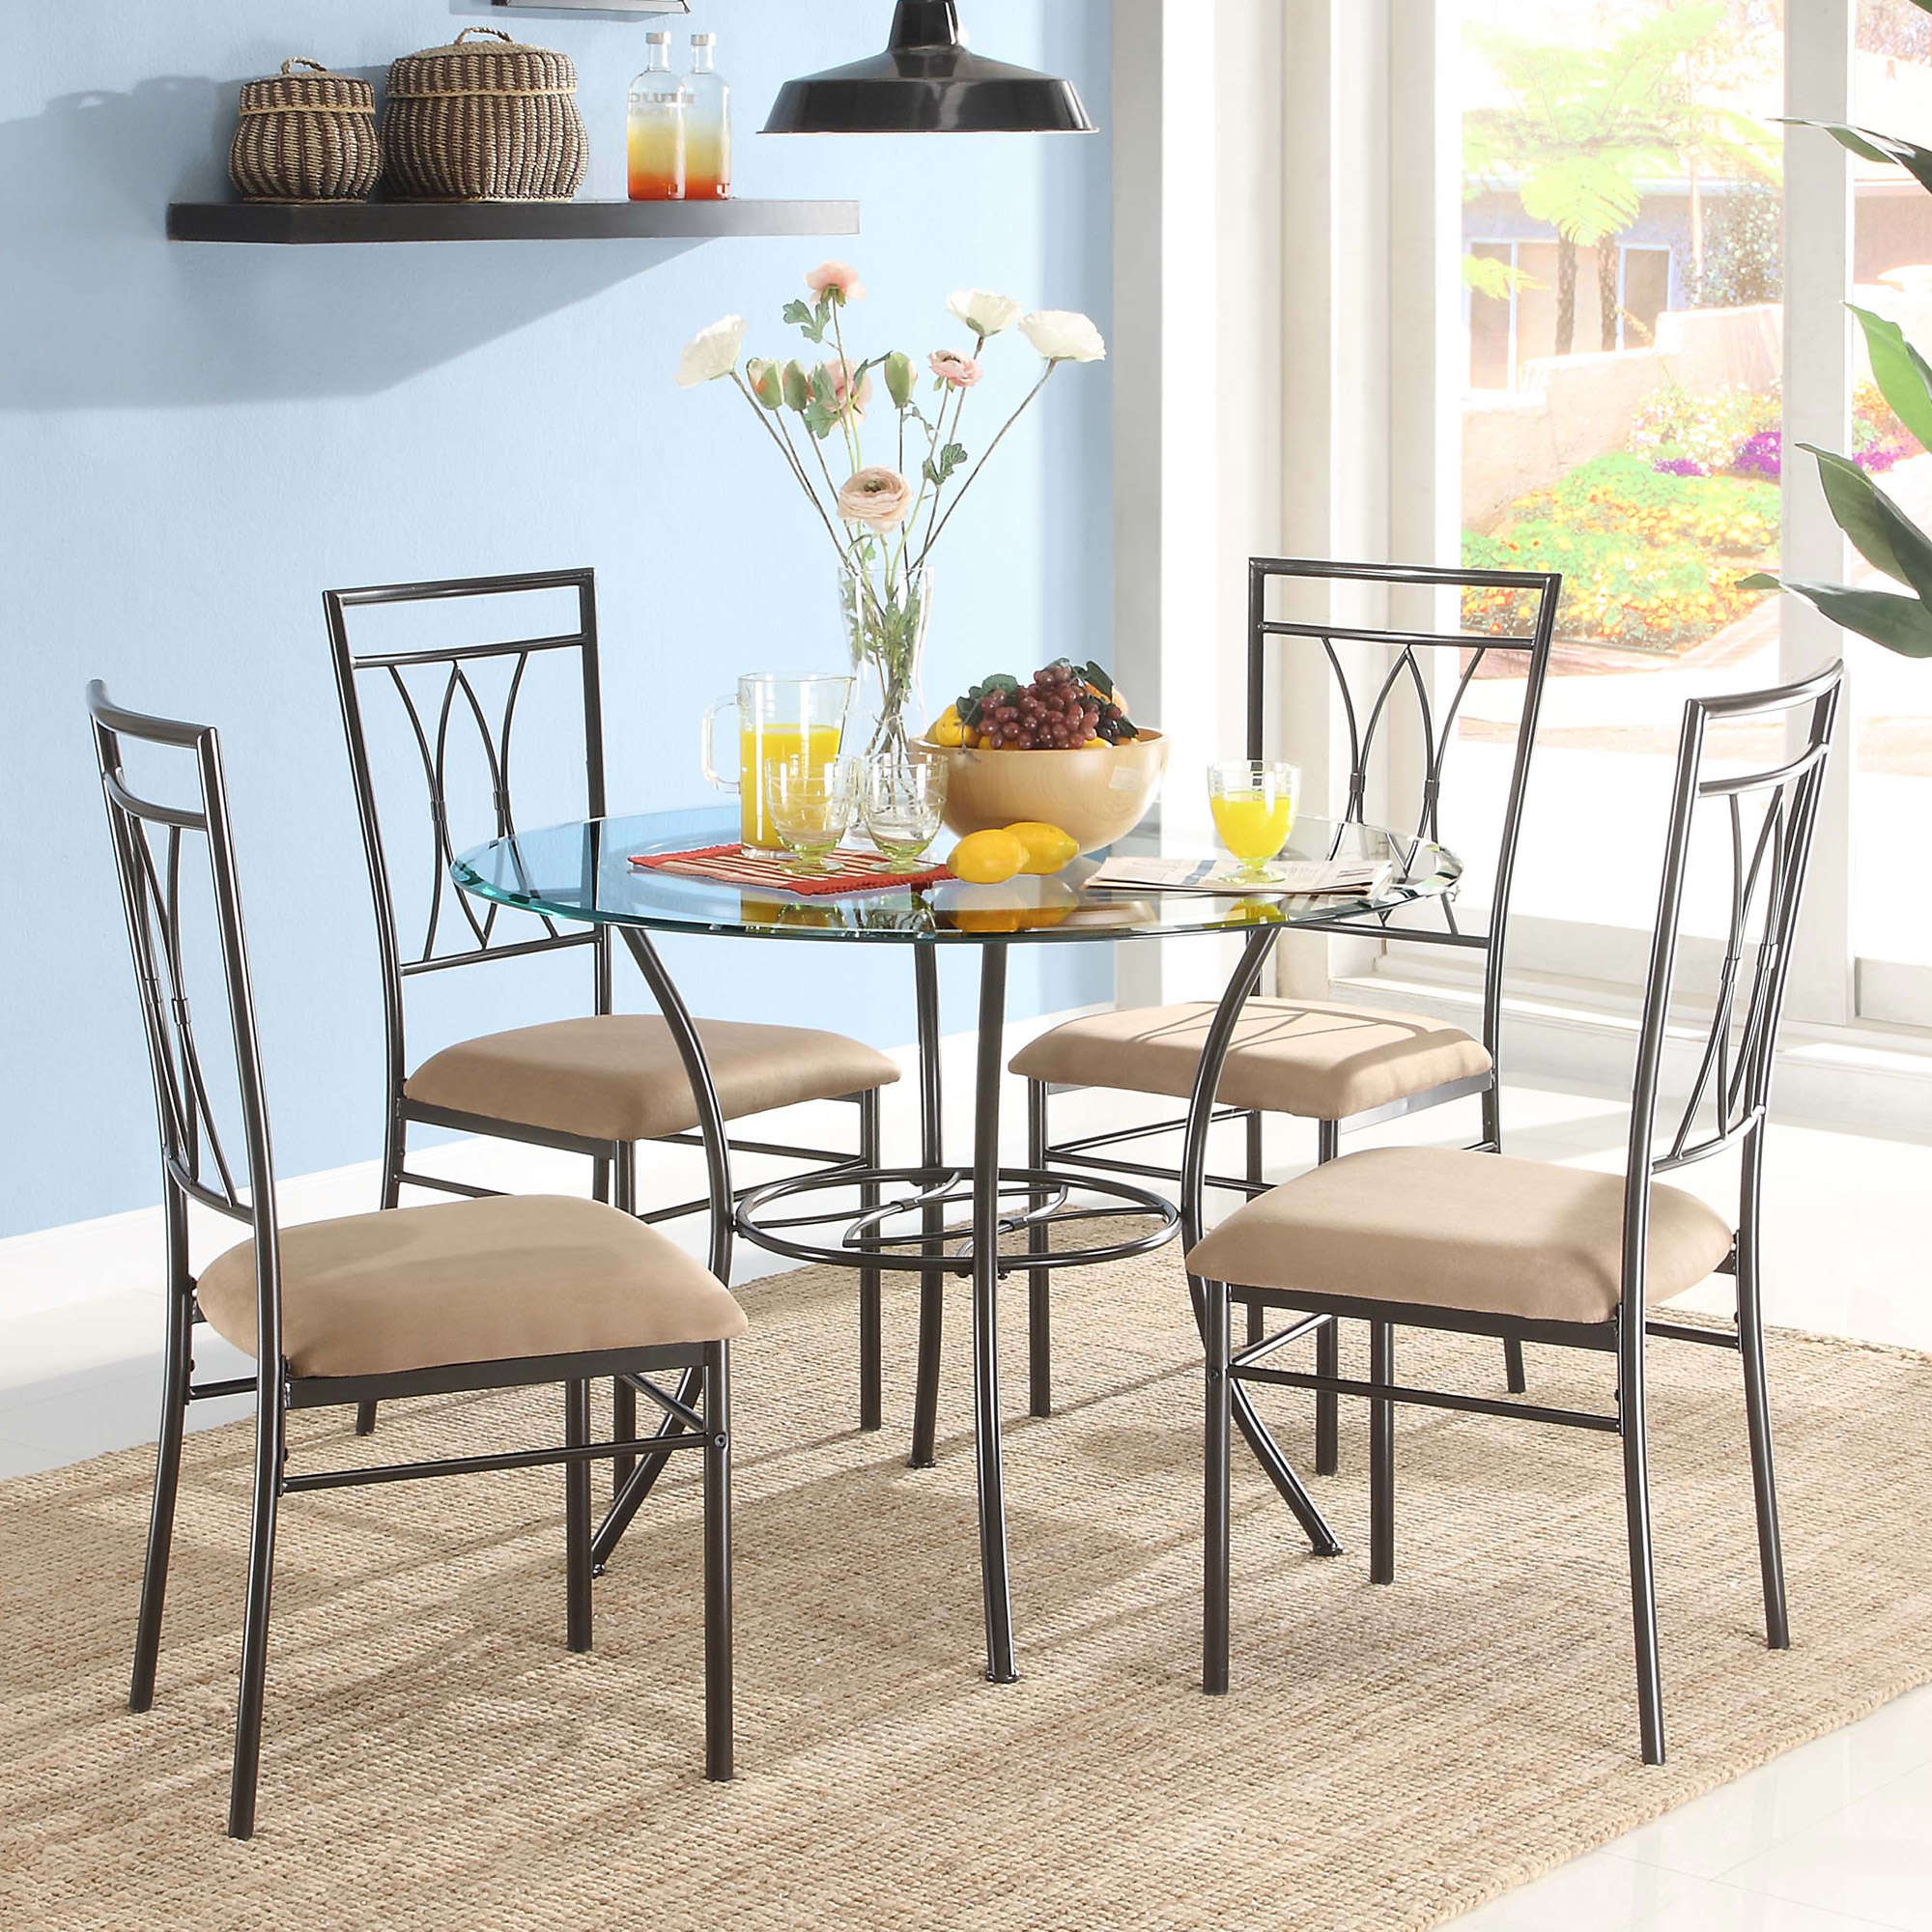 Moorehead 3 Piece Counter Height Dining Sets Within Most Up To Date Kitchen & Dining Furniture – Walmart (View 13 of 20)